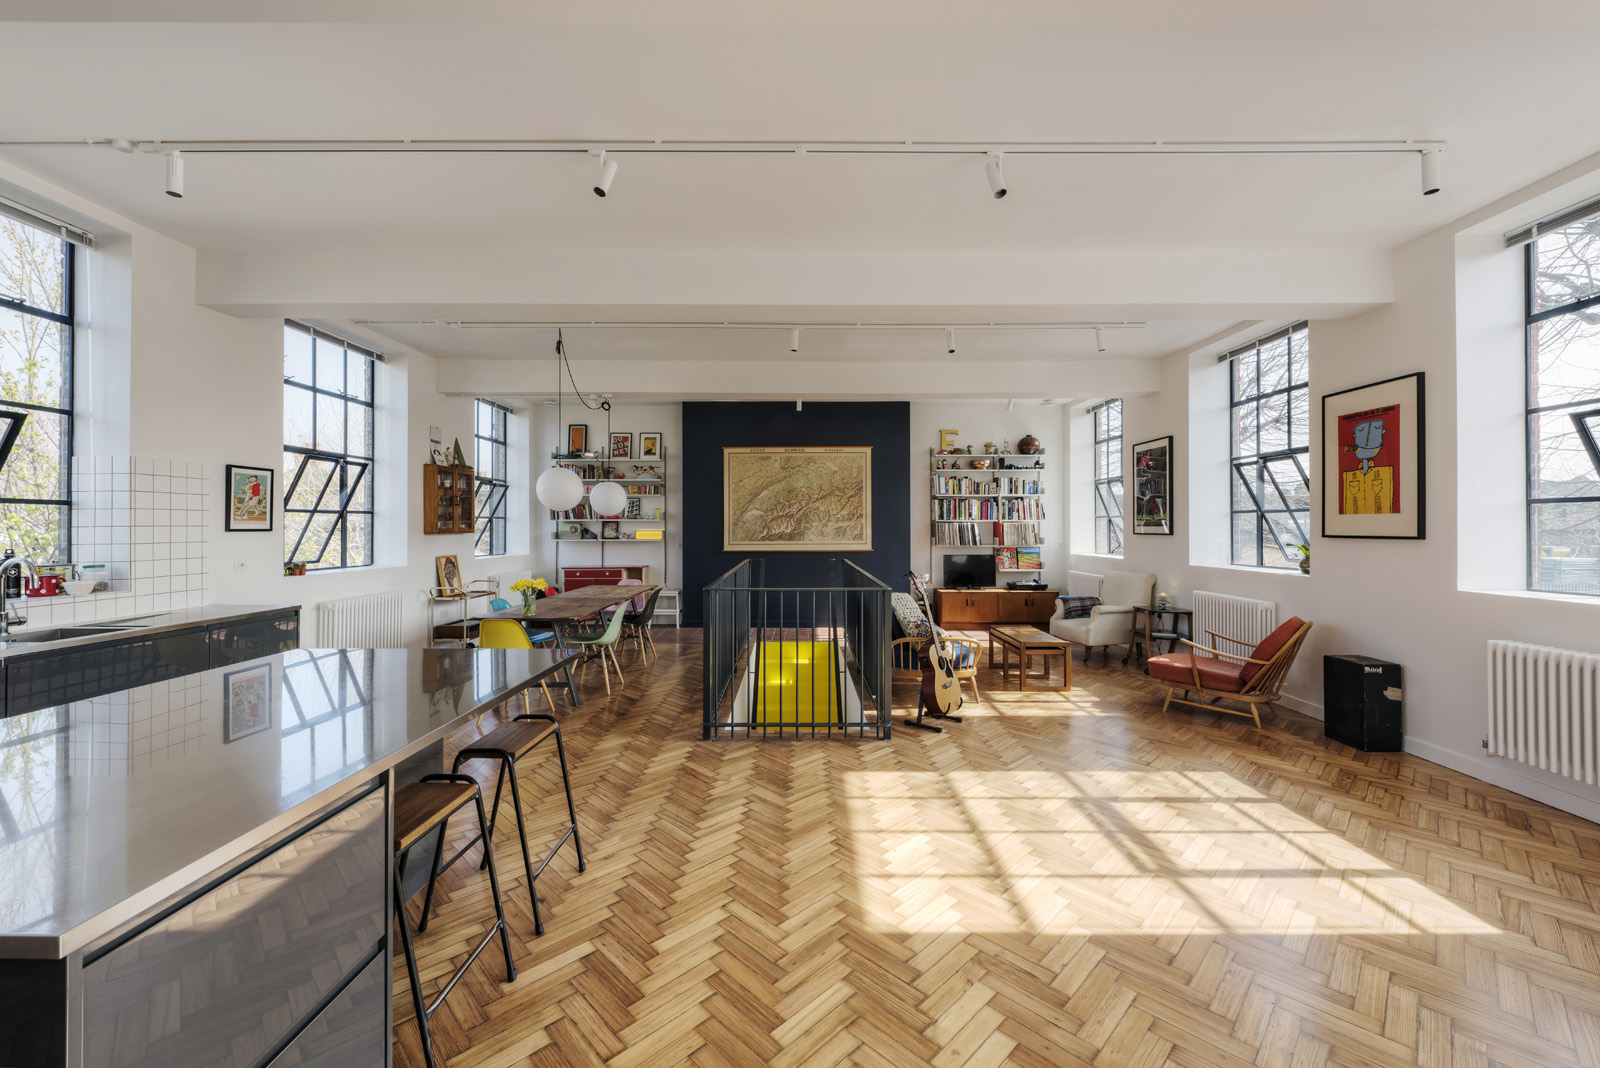 The first floor has been fully opened up to allow the large windows flood the 100 sqm kitchen, dining and living space with an abundance of natural light with the addition of a fourth bedroom/home office.